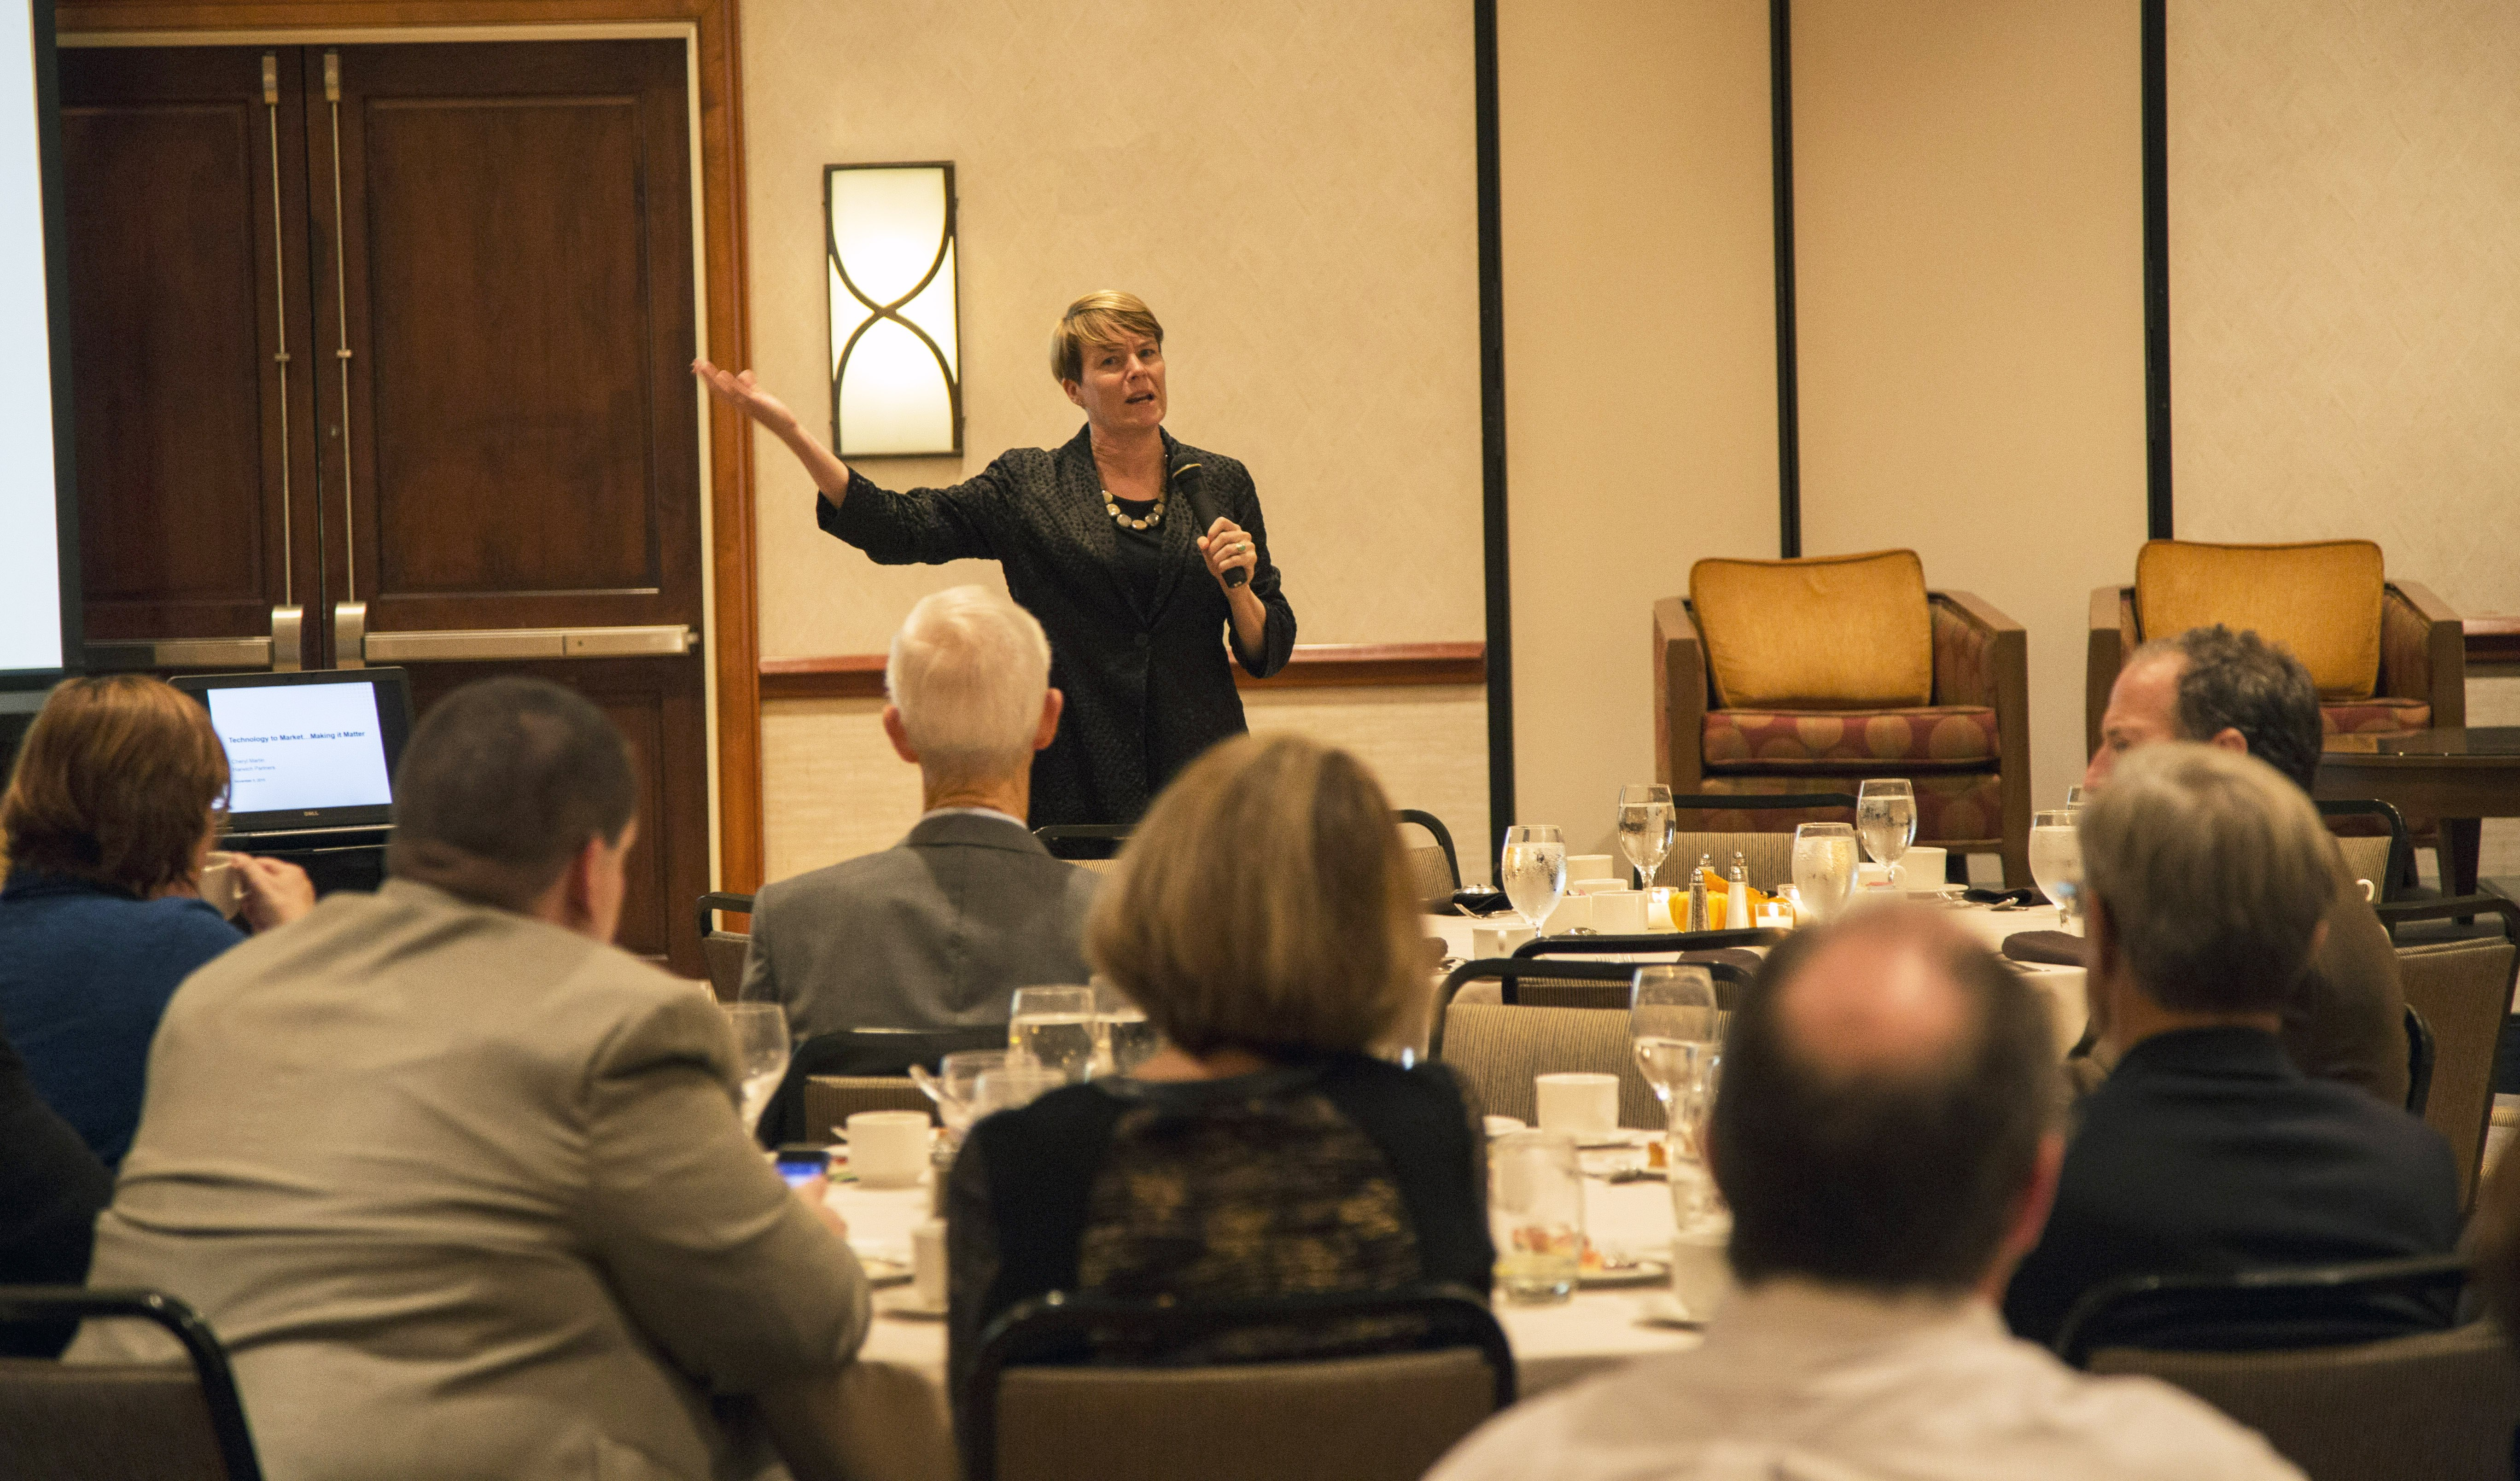 Keynote presenter Cheryl Martin, former interim director of U.S. Department of Energy's Advanced Research Projects Agency-Energy